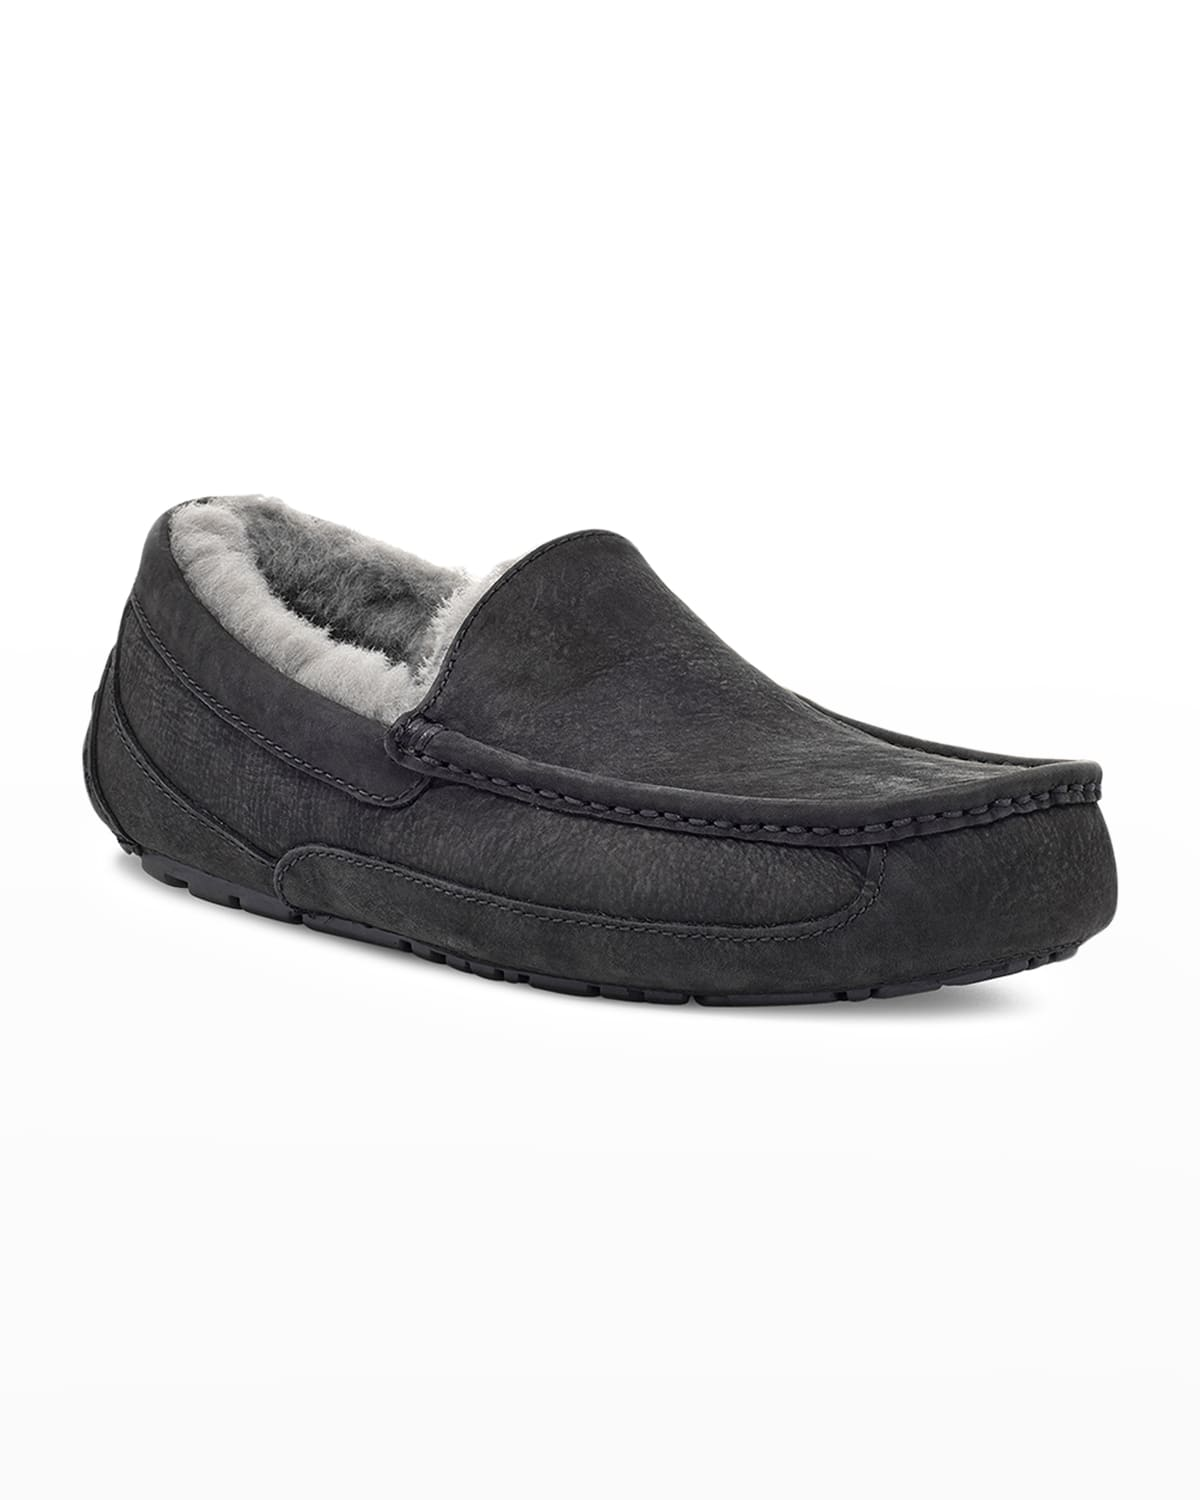 Men's Ascot Leather Slippers